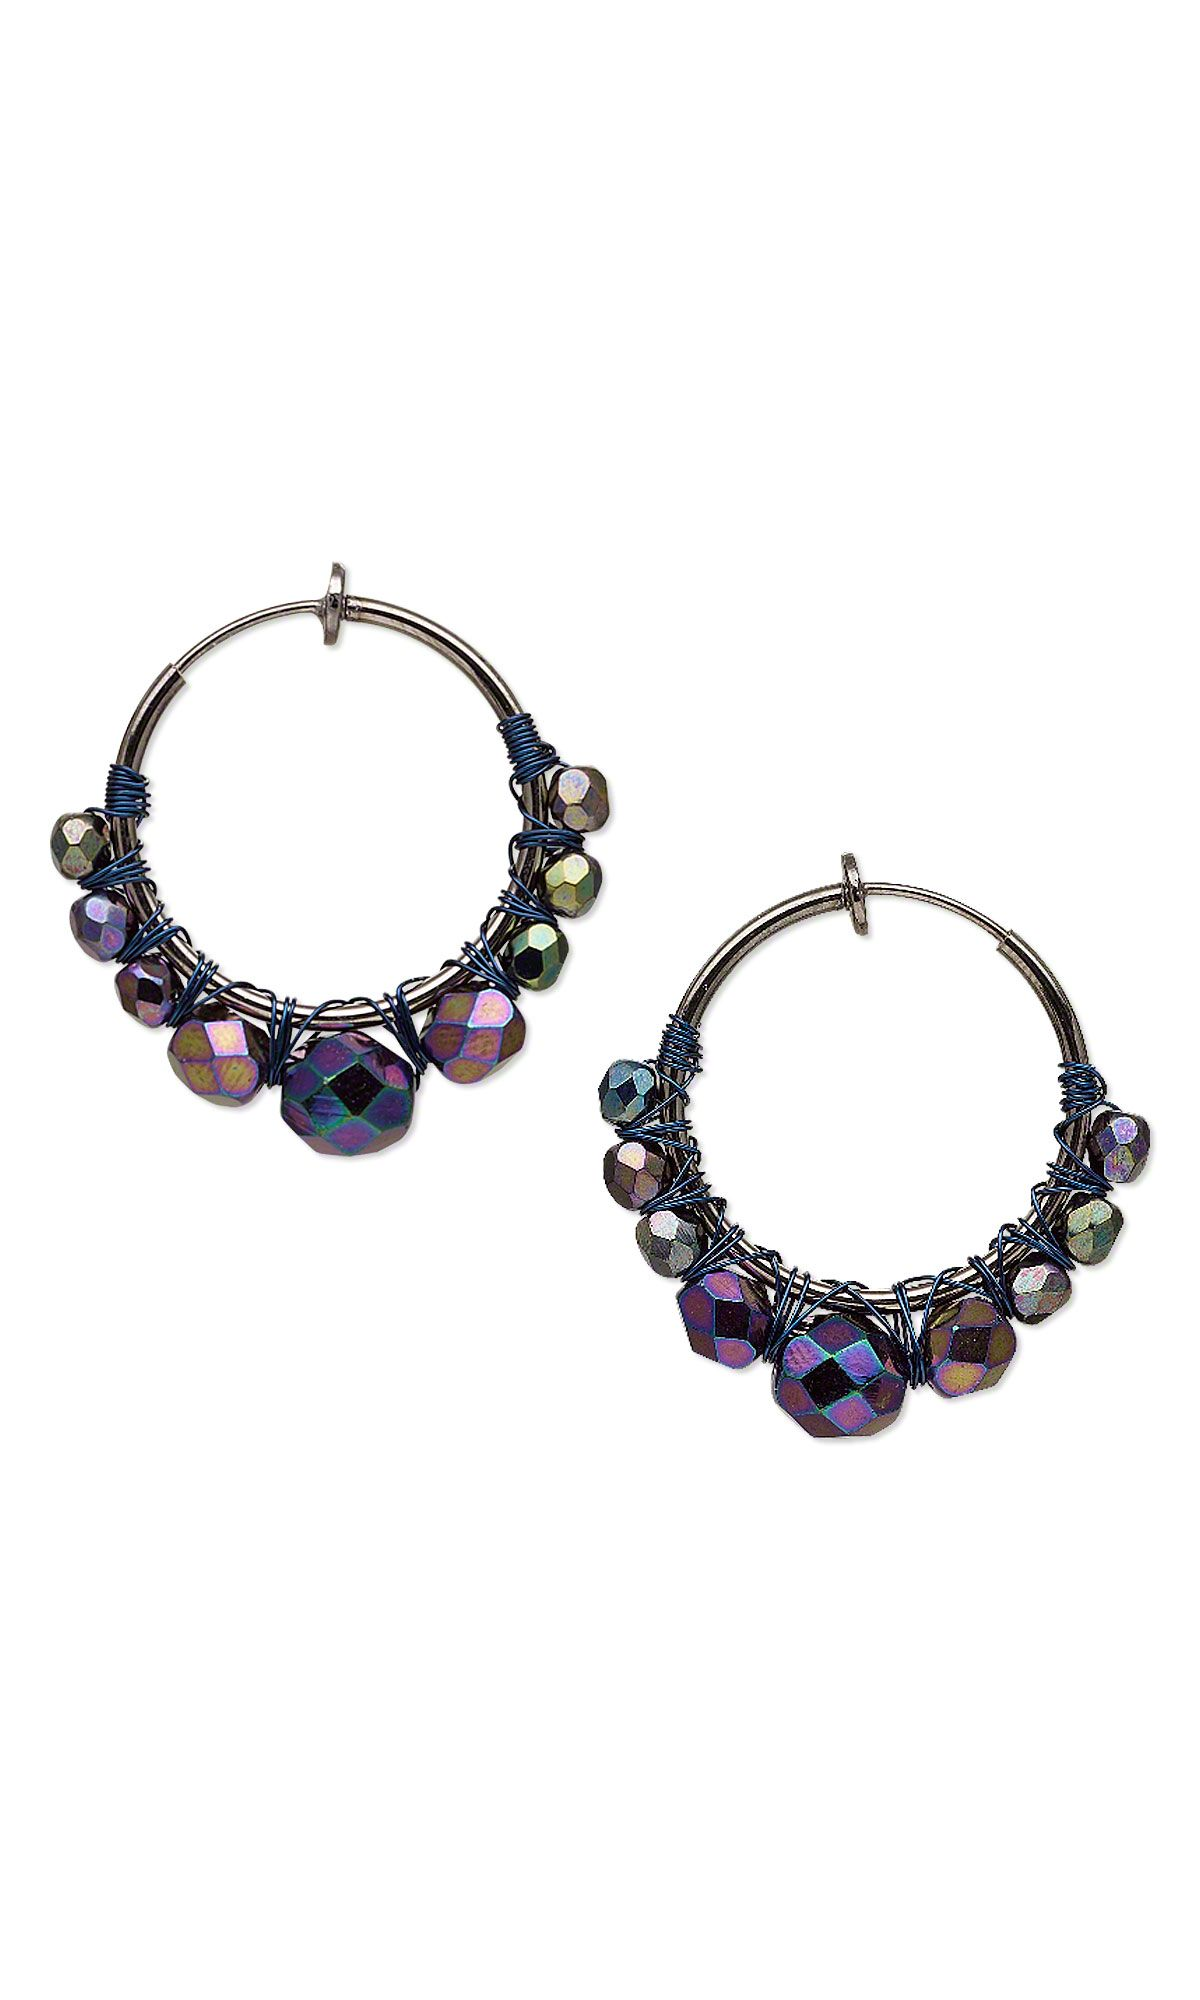 Jewelry Design - Earrings with Czech Fire-Polished Glass Beads and ...